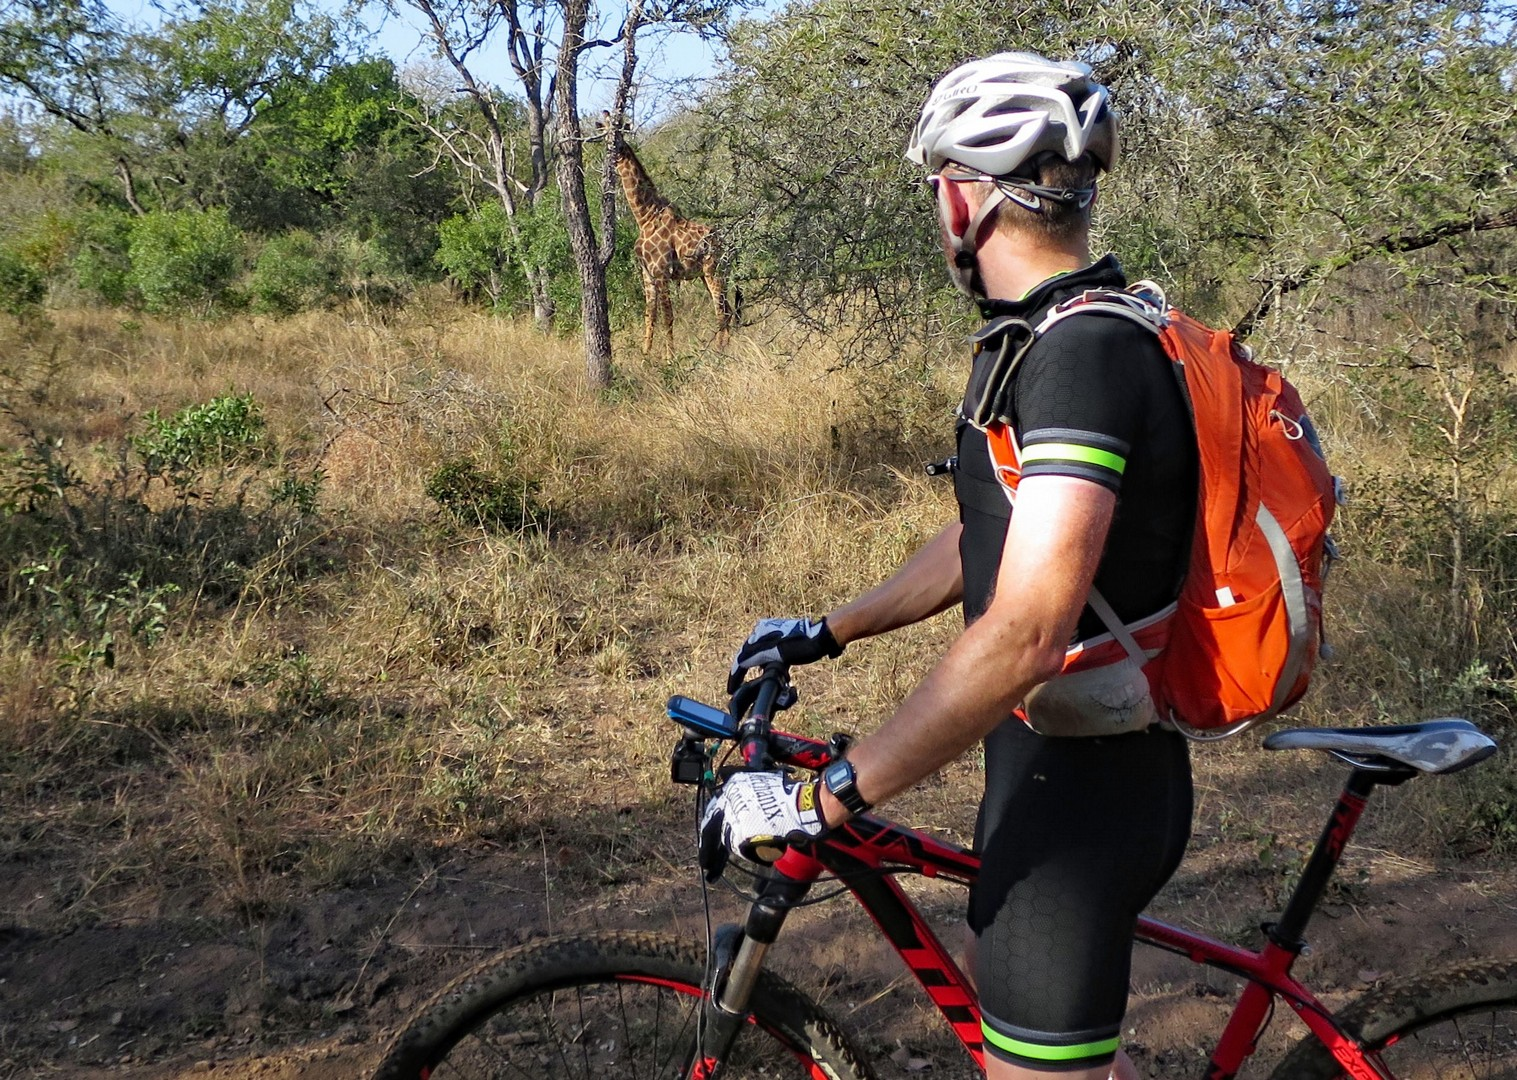 cycling-holiday-in-swaziland-cycling-adventure-africa-cycling safari.jpg - Swaziland - Cycling Safari - Cycling Adventures